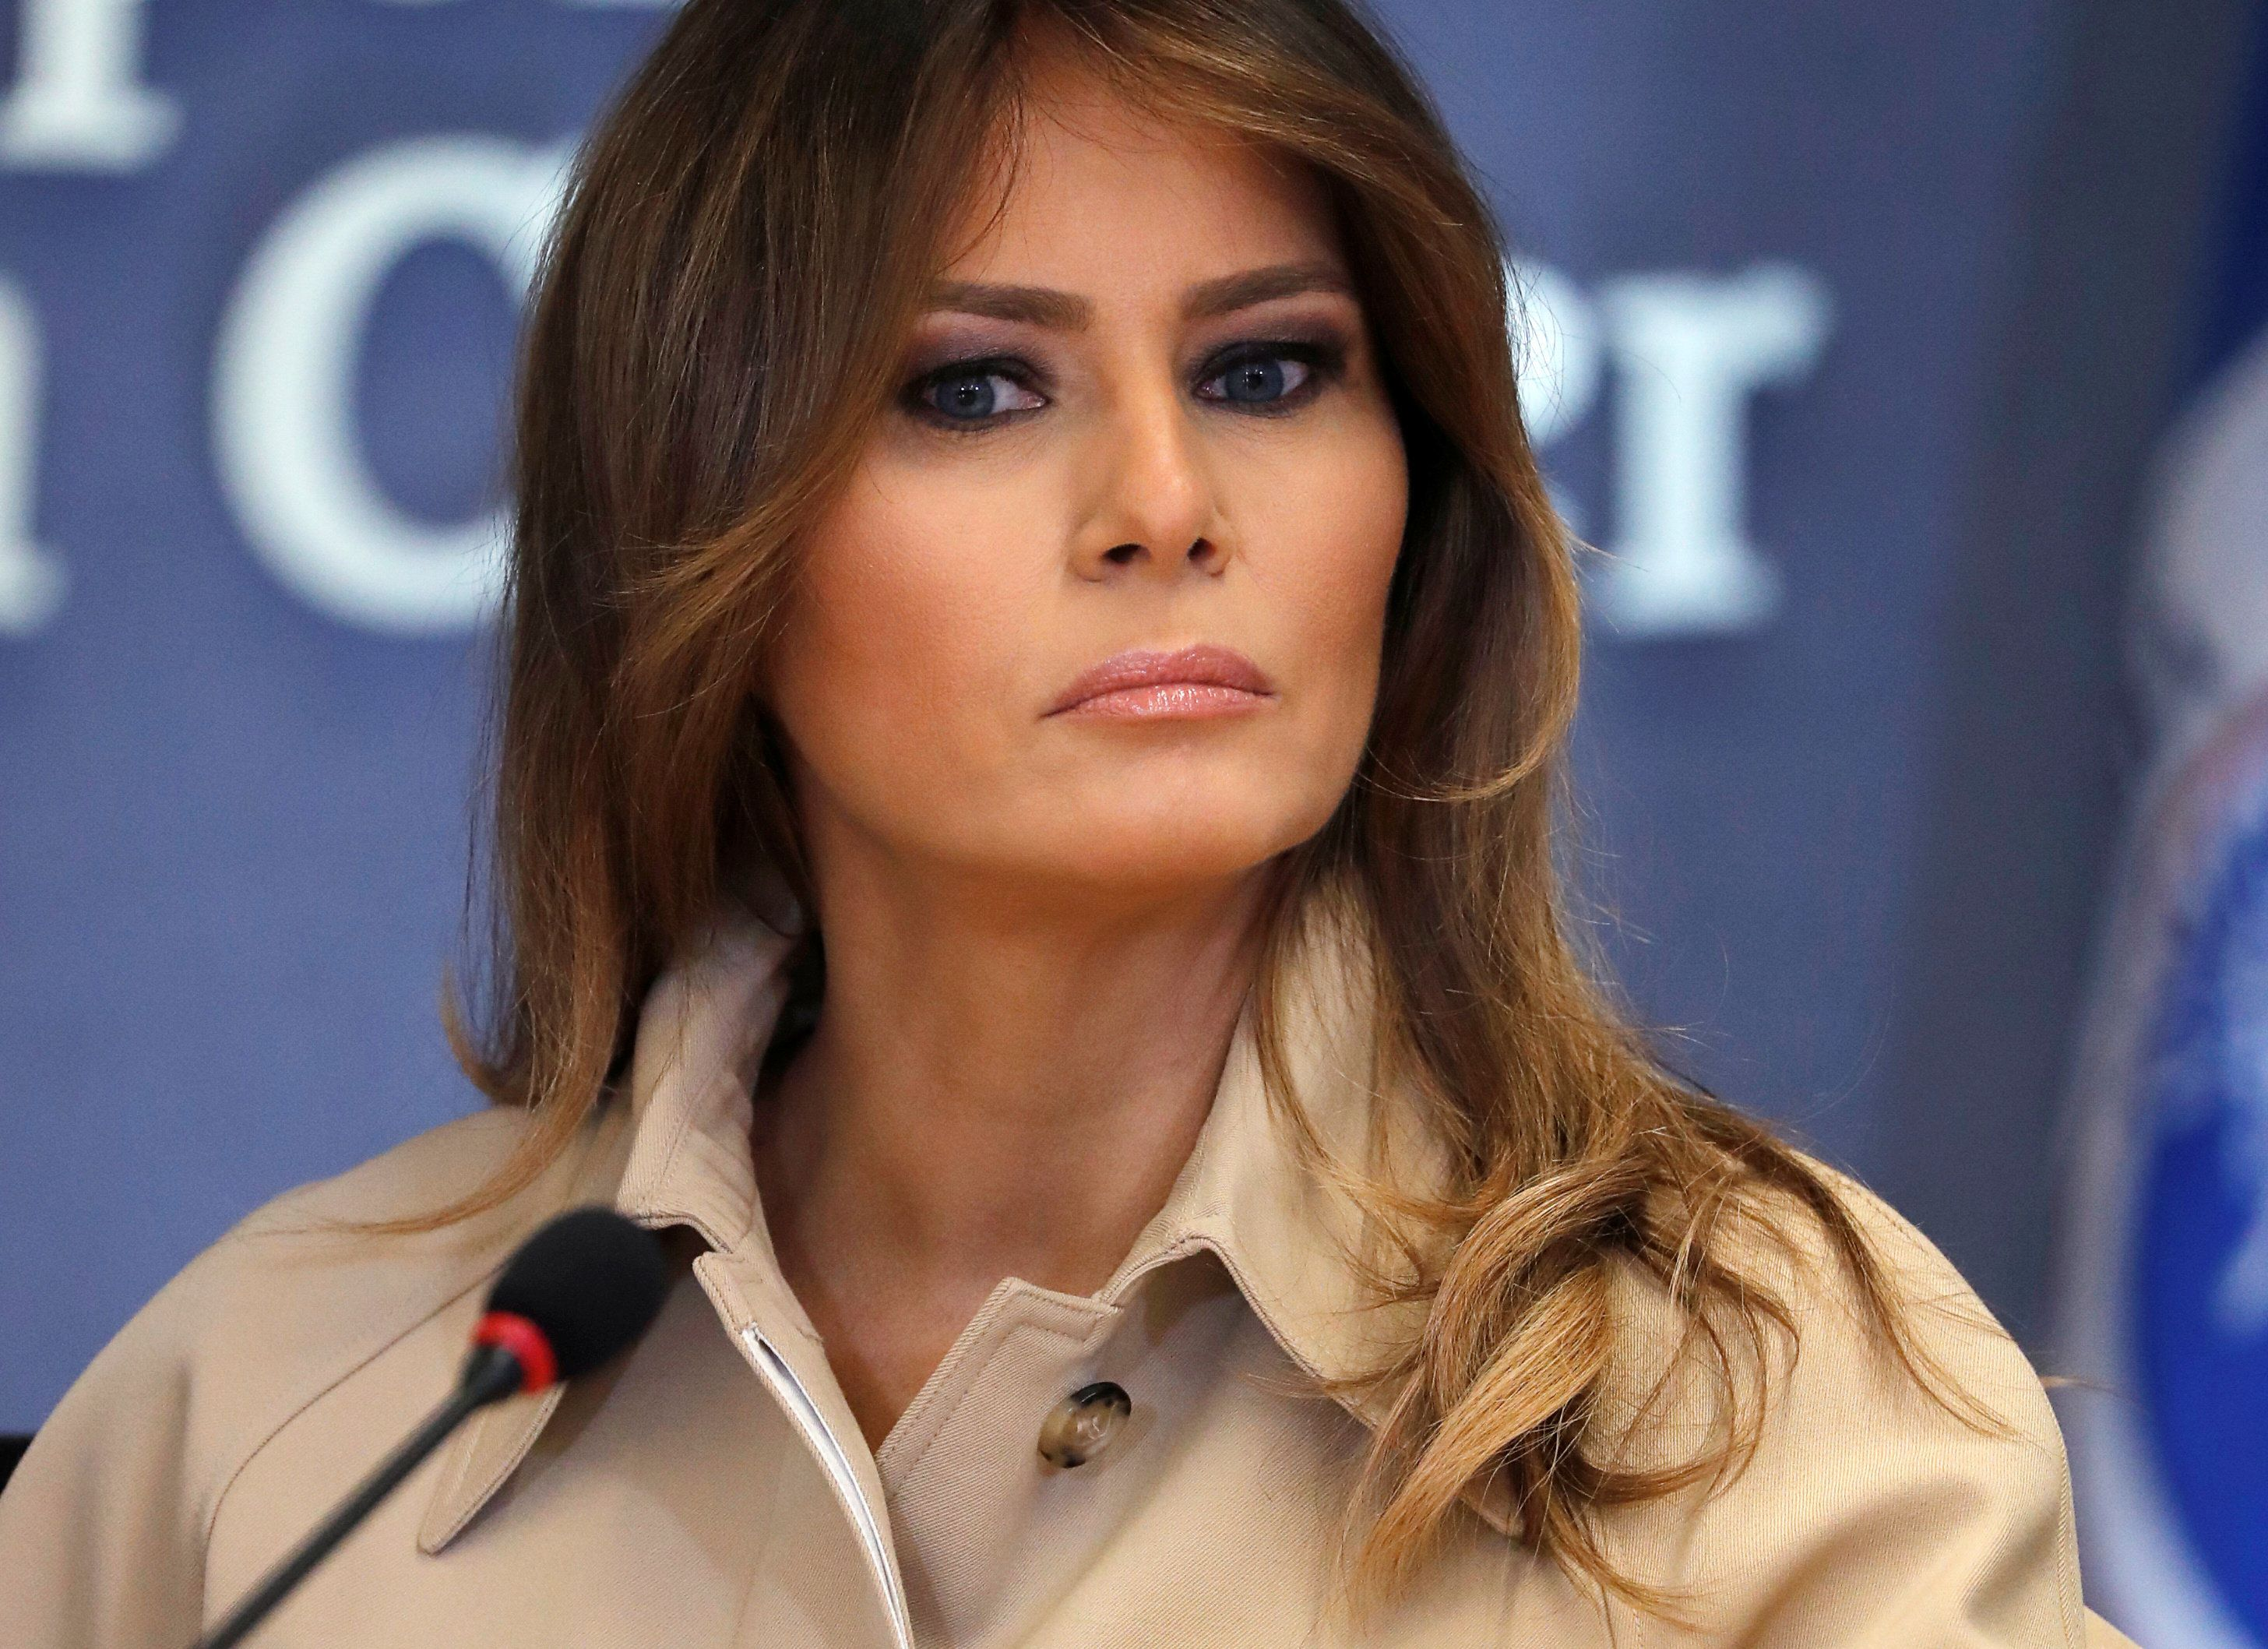 Melania Trump 'Hates' Family Separation, But Doesn't Directly Call Out Policy